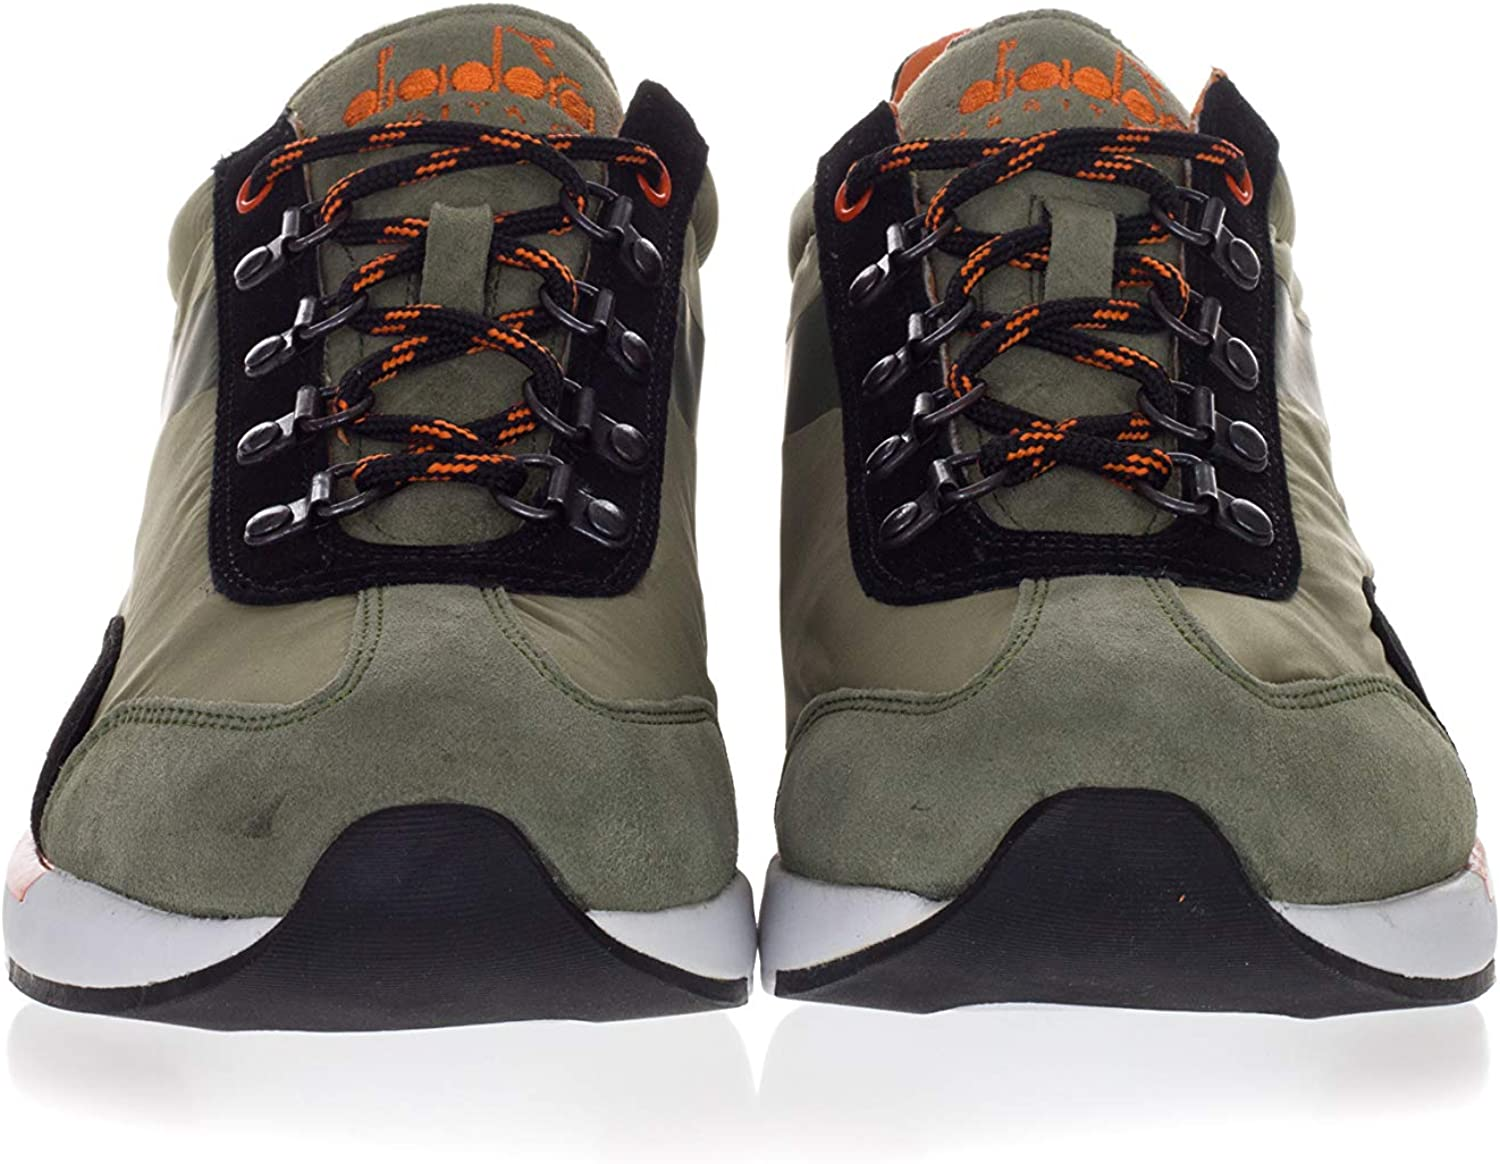 Diadora Heritage Mens Shoes Equipe Evo Technical Fabric and Suede Sneakers Green